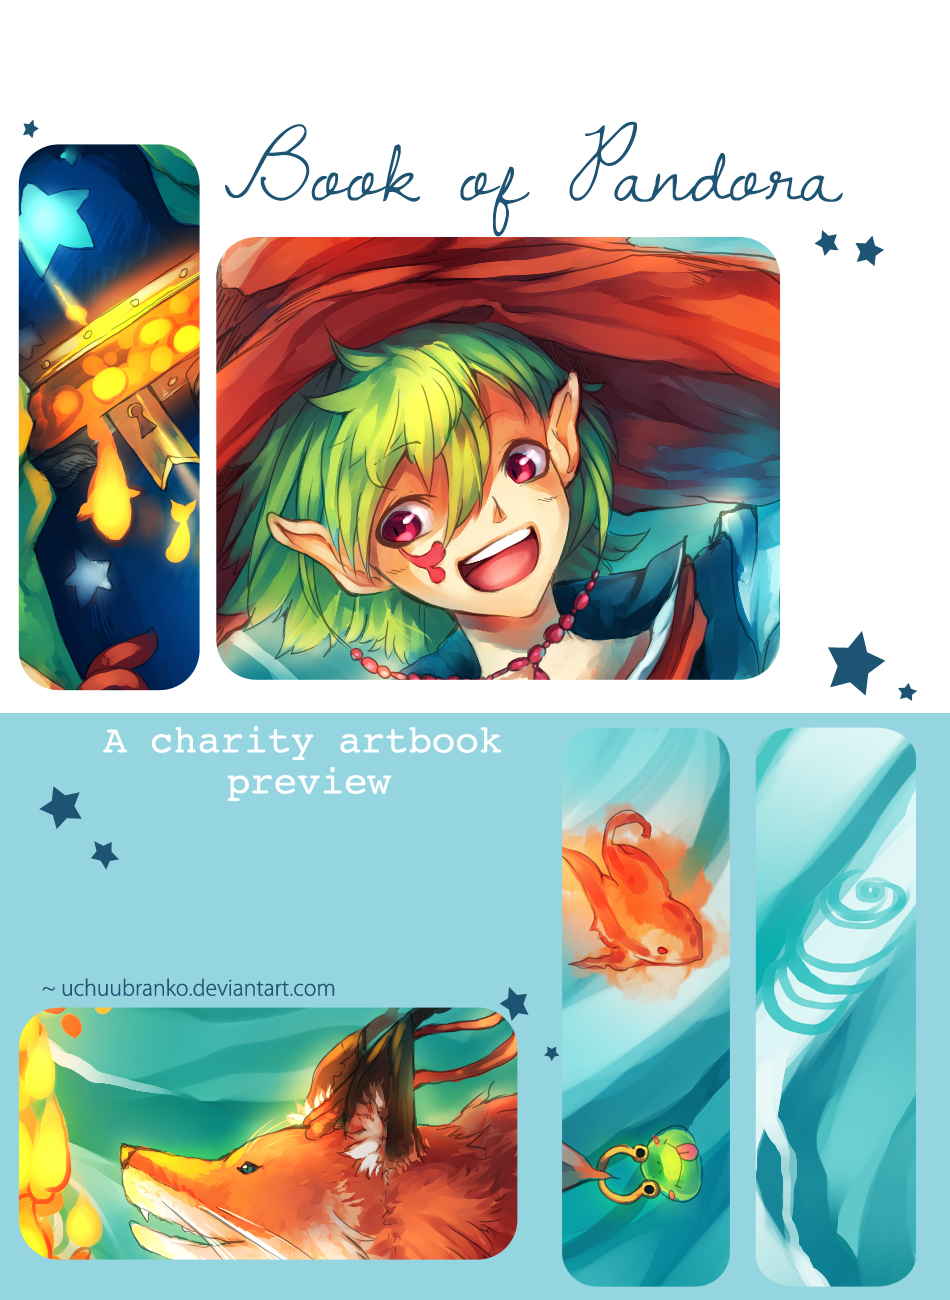 Book of Pandora - a charity artbook preview by uchuubranko